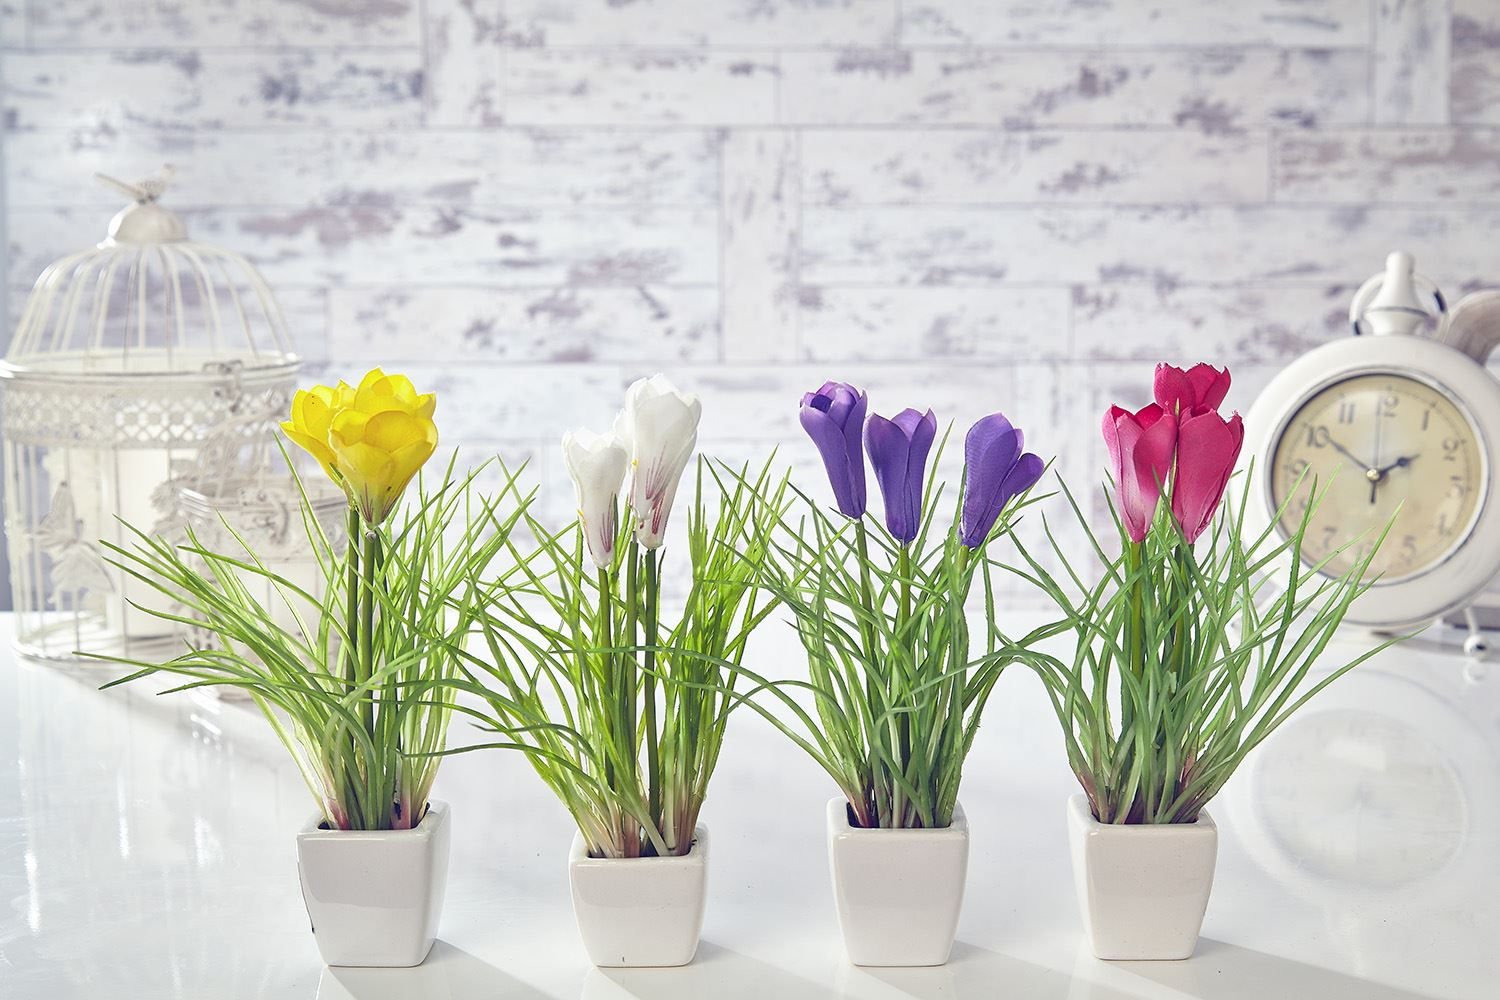 Home Decor Plants Artificial Crocus Flowers Plants In Pot Home Decor Garden